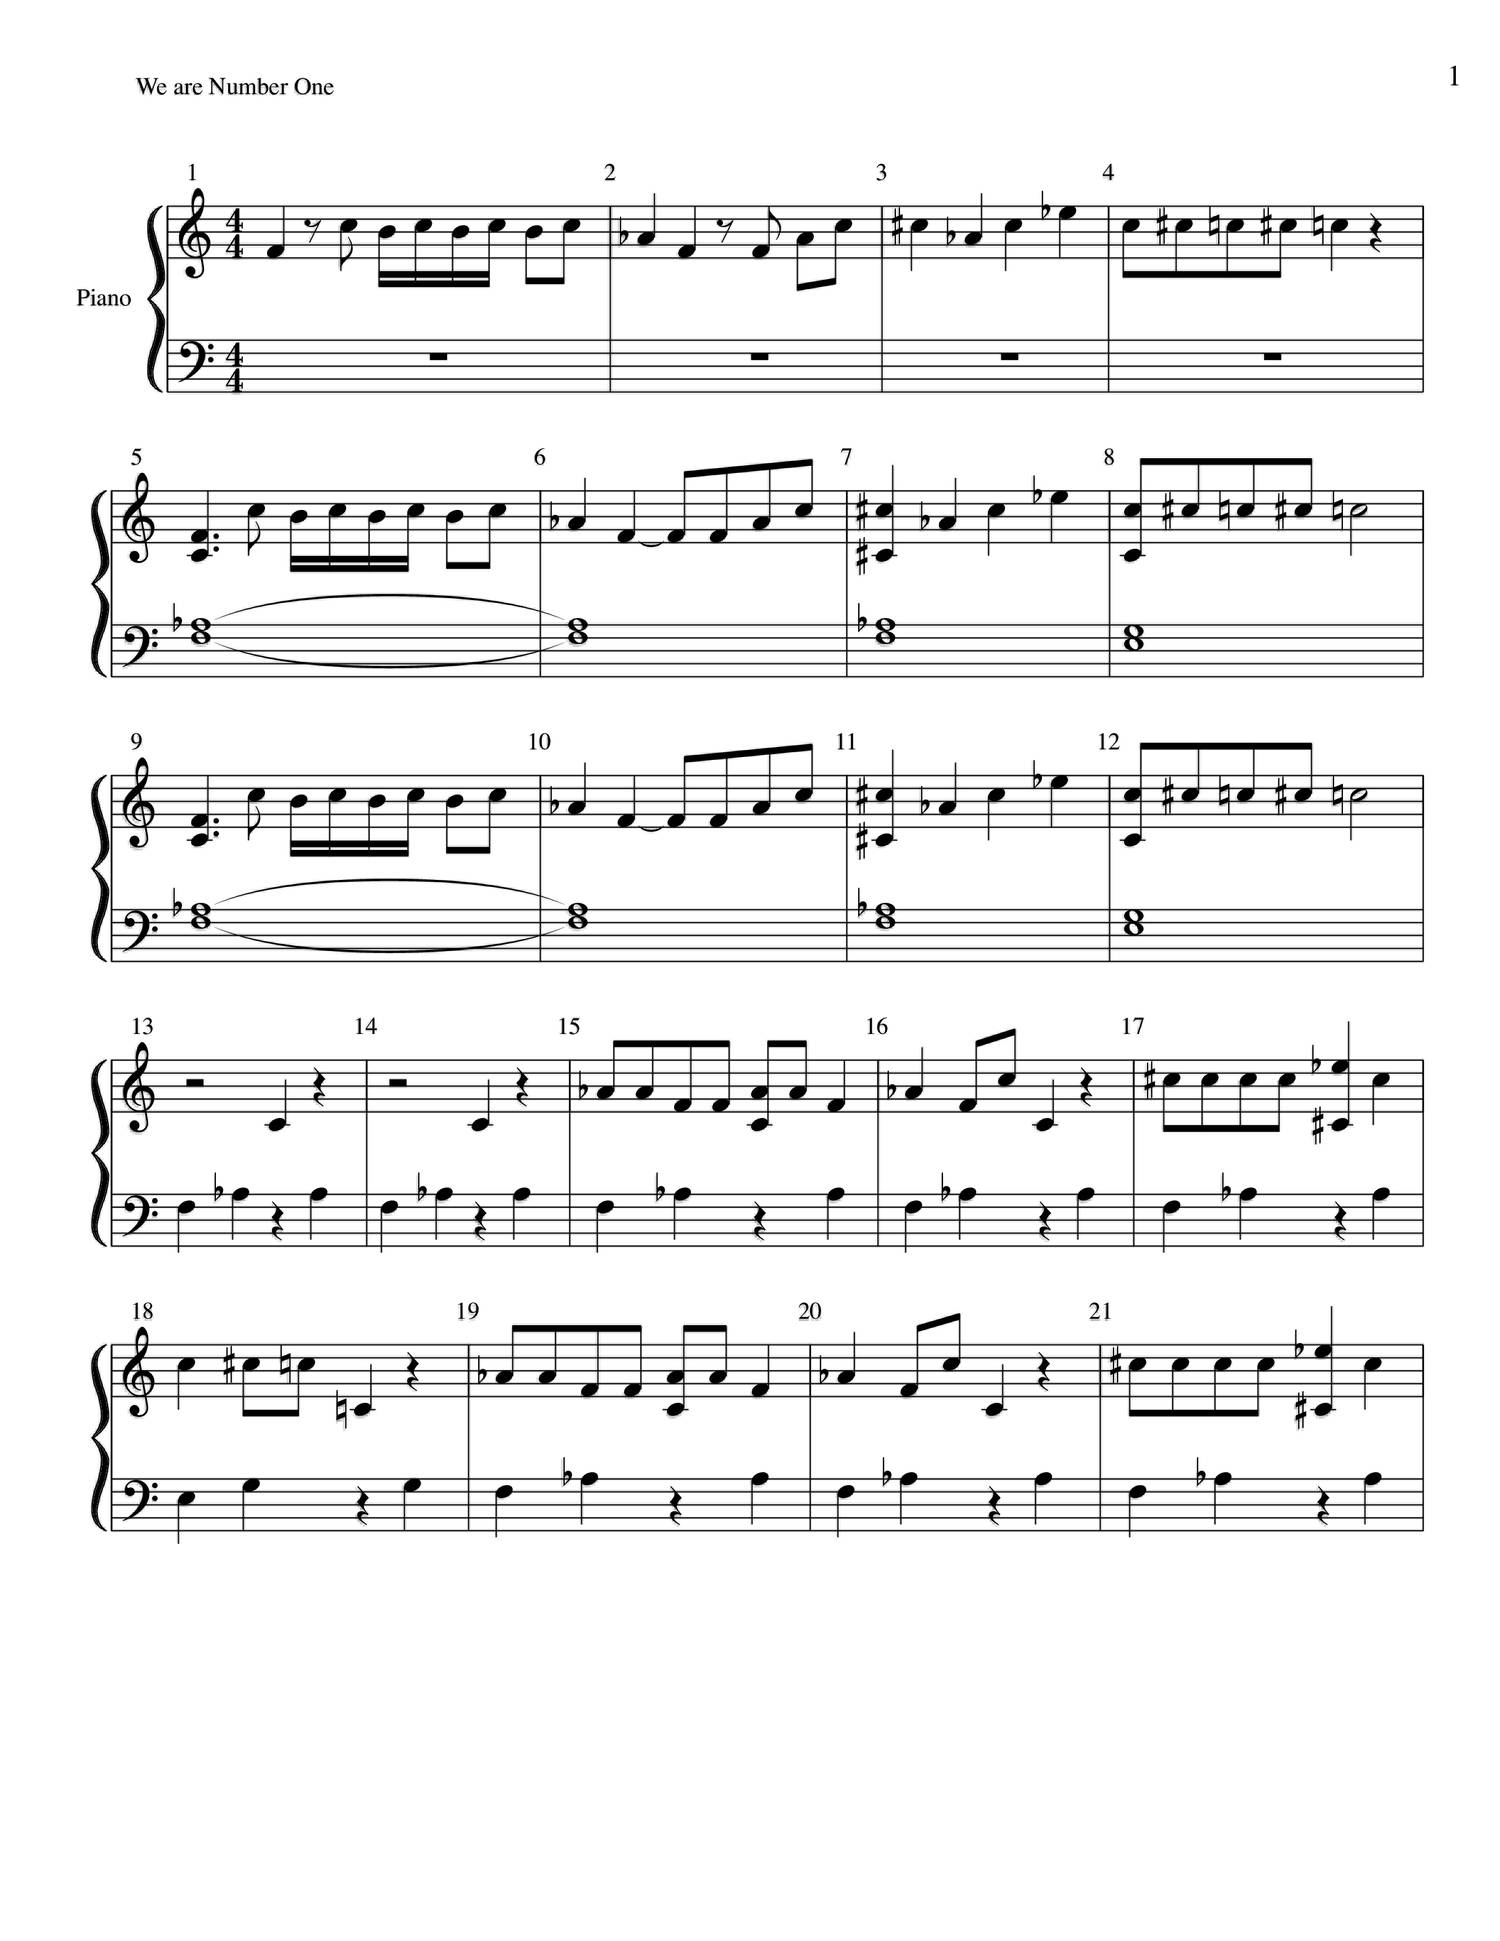 we are number one sheet music.pdf - DocDroid